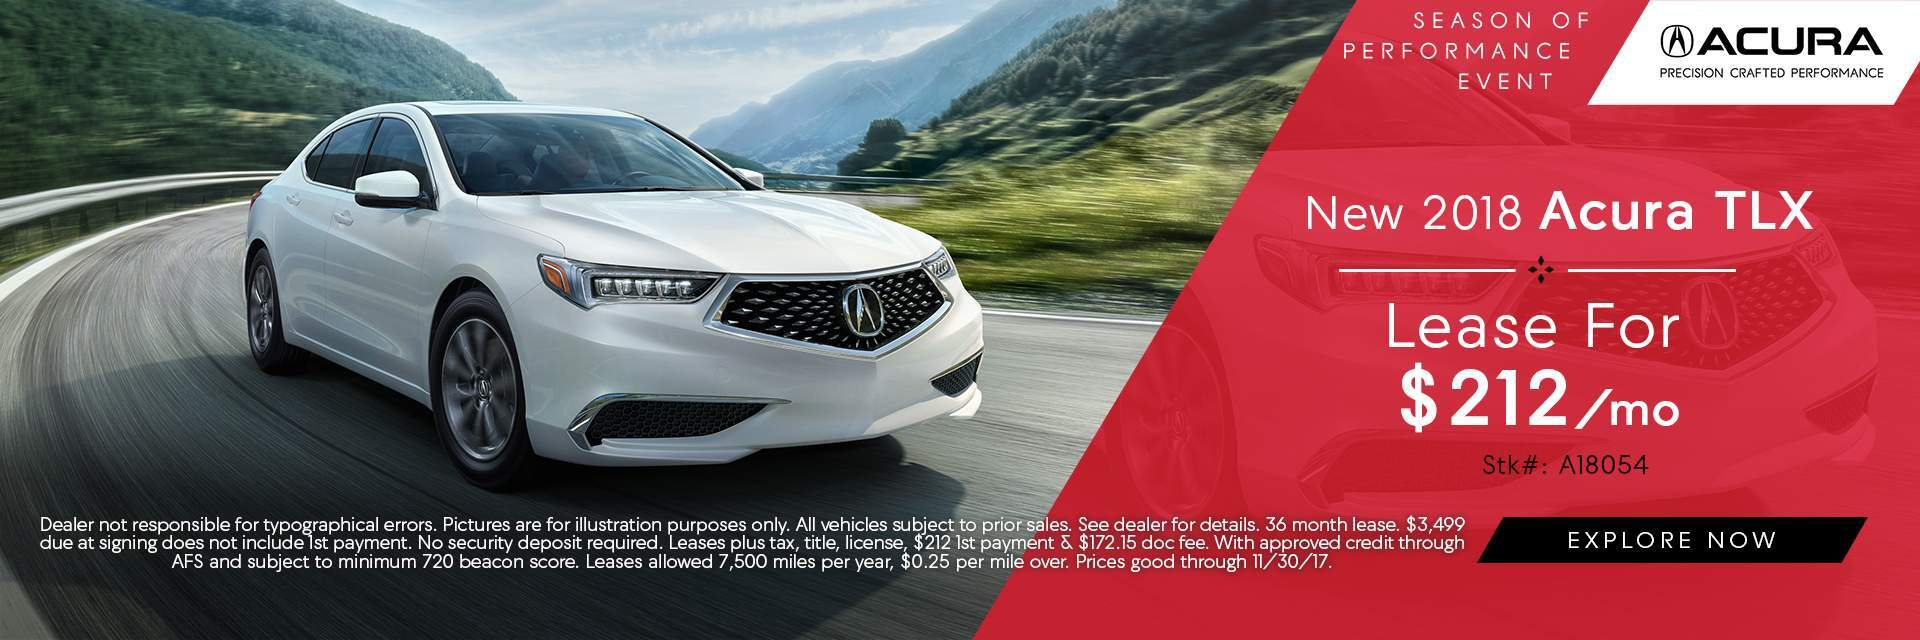 2018 TLX Lease